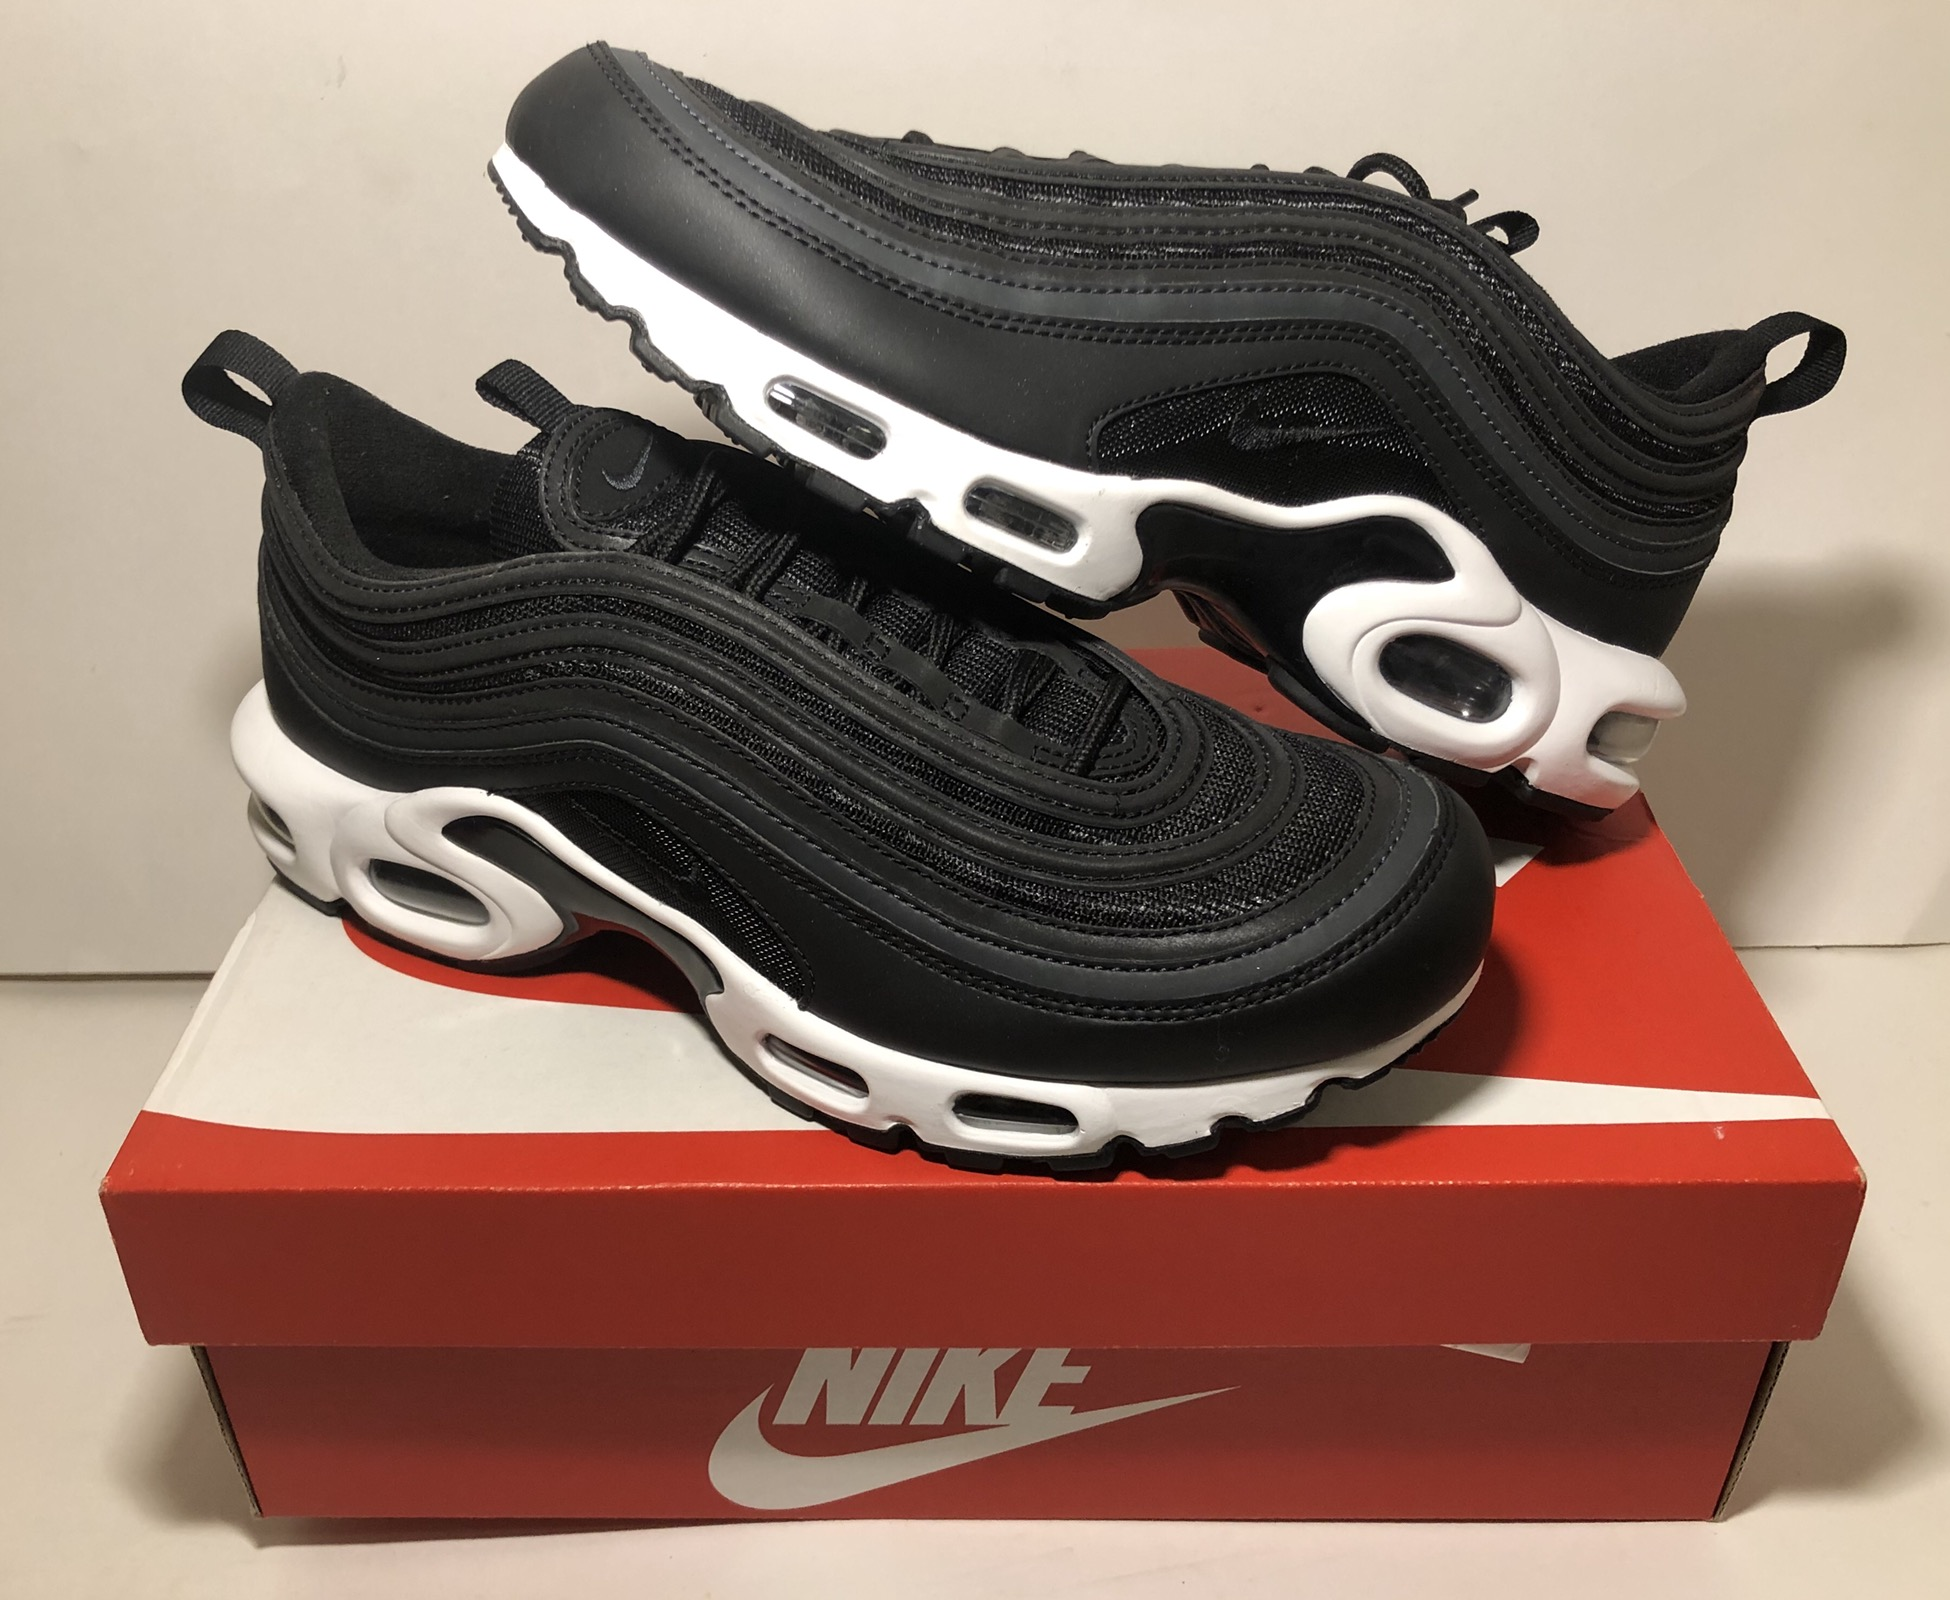 Erudito desconcertado Seguid así  Nike Nike Air Max 97 Plus Tn Hybrid Black/white Ah8143-001 Brand New Sold  Out | Grailed